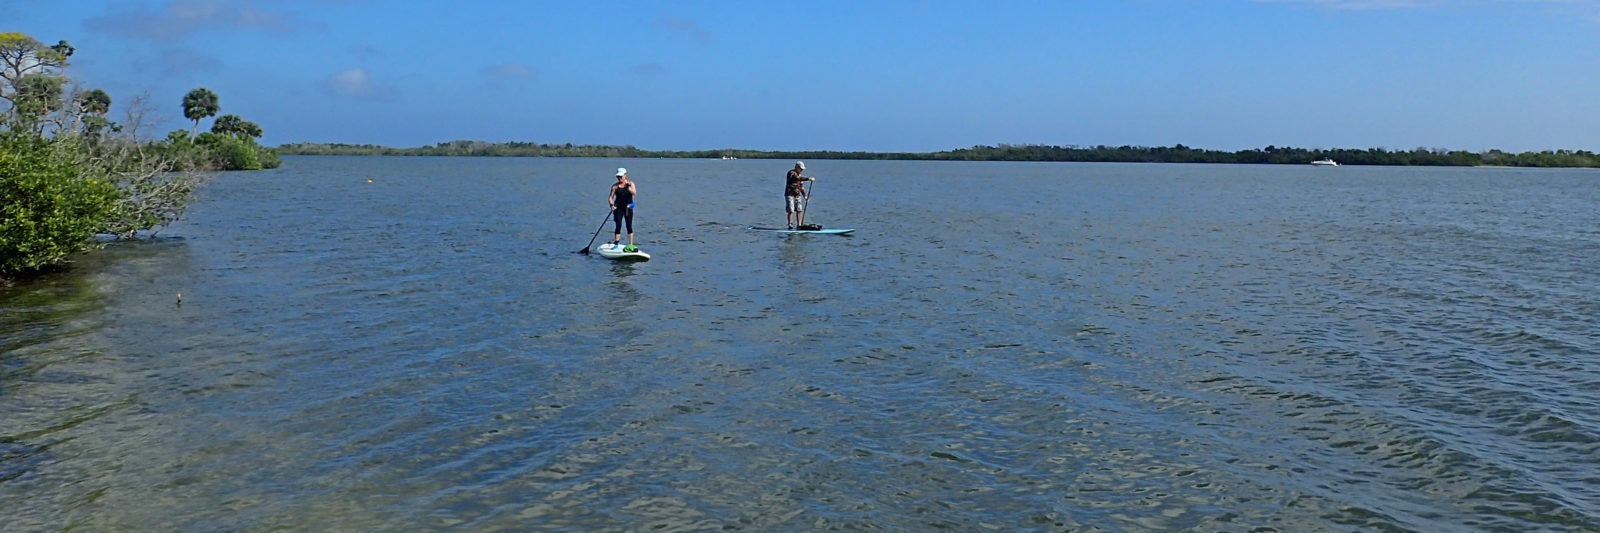 Paddleboarders on Mosquito Lagoon